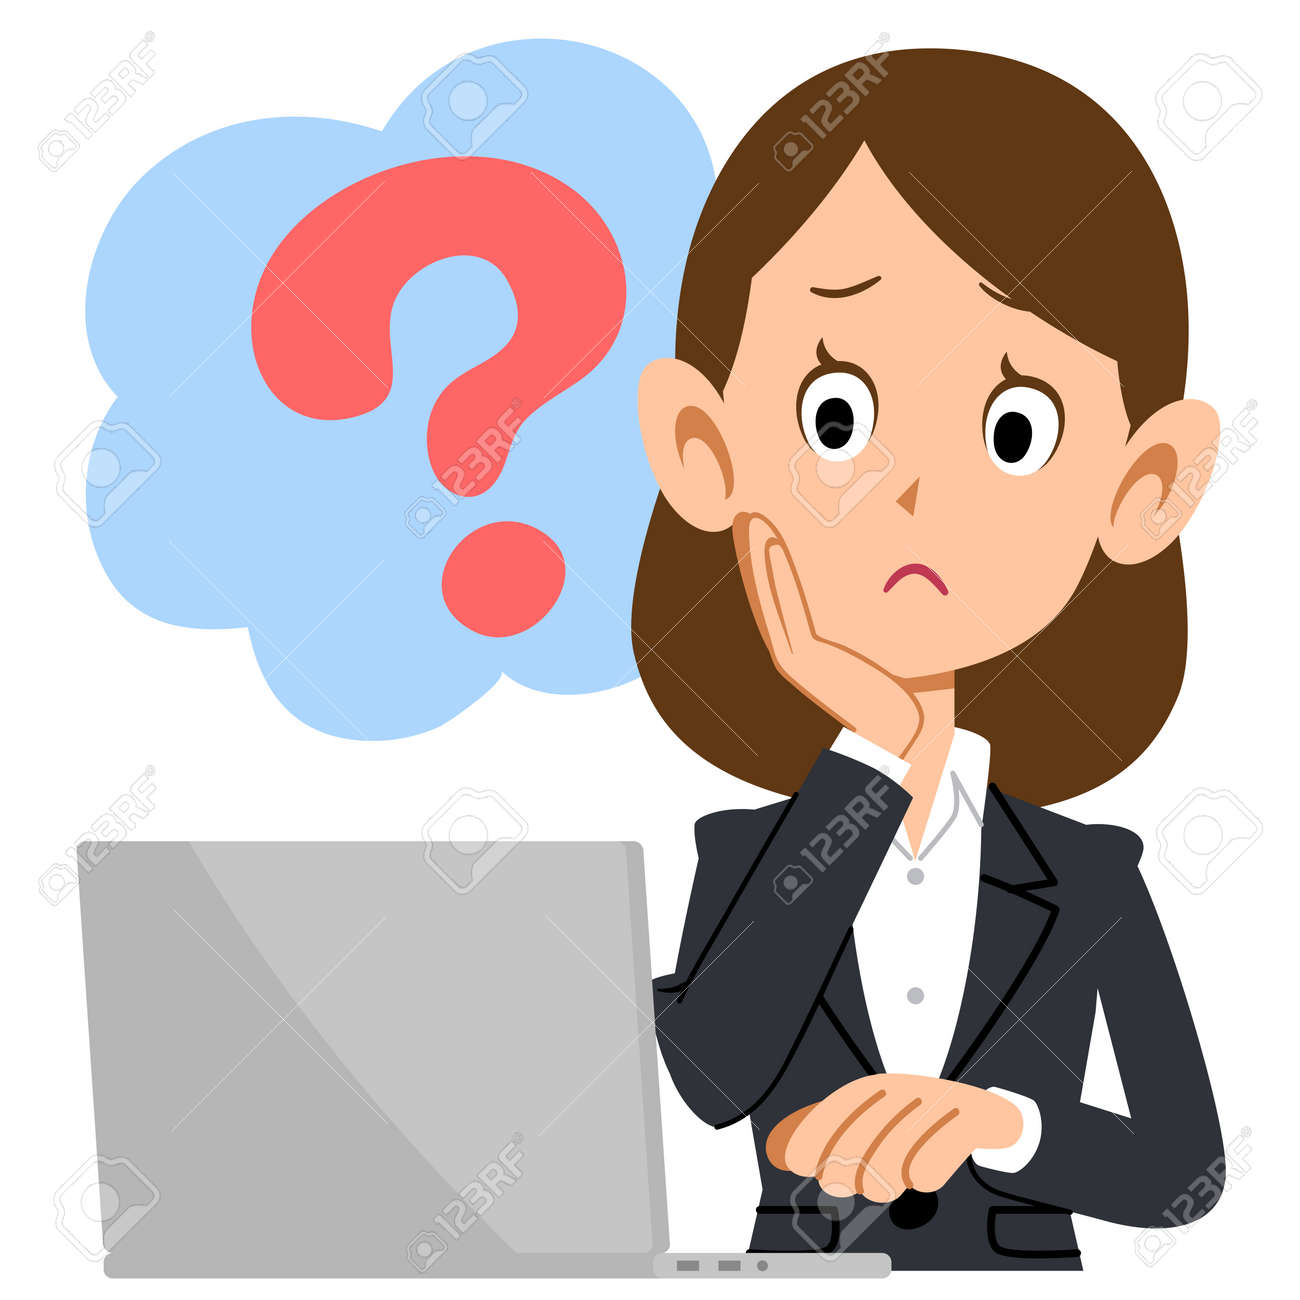 Business PC questions - 56577390